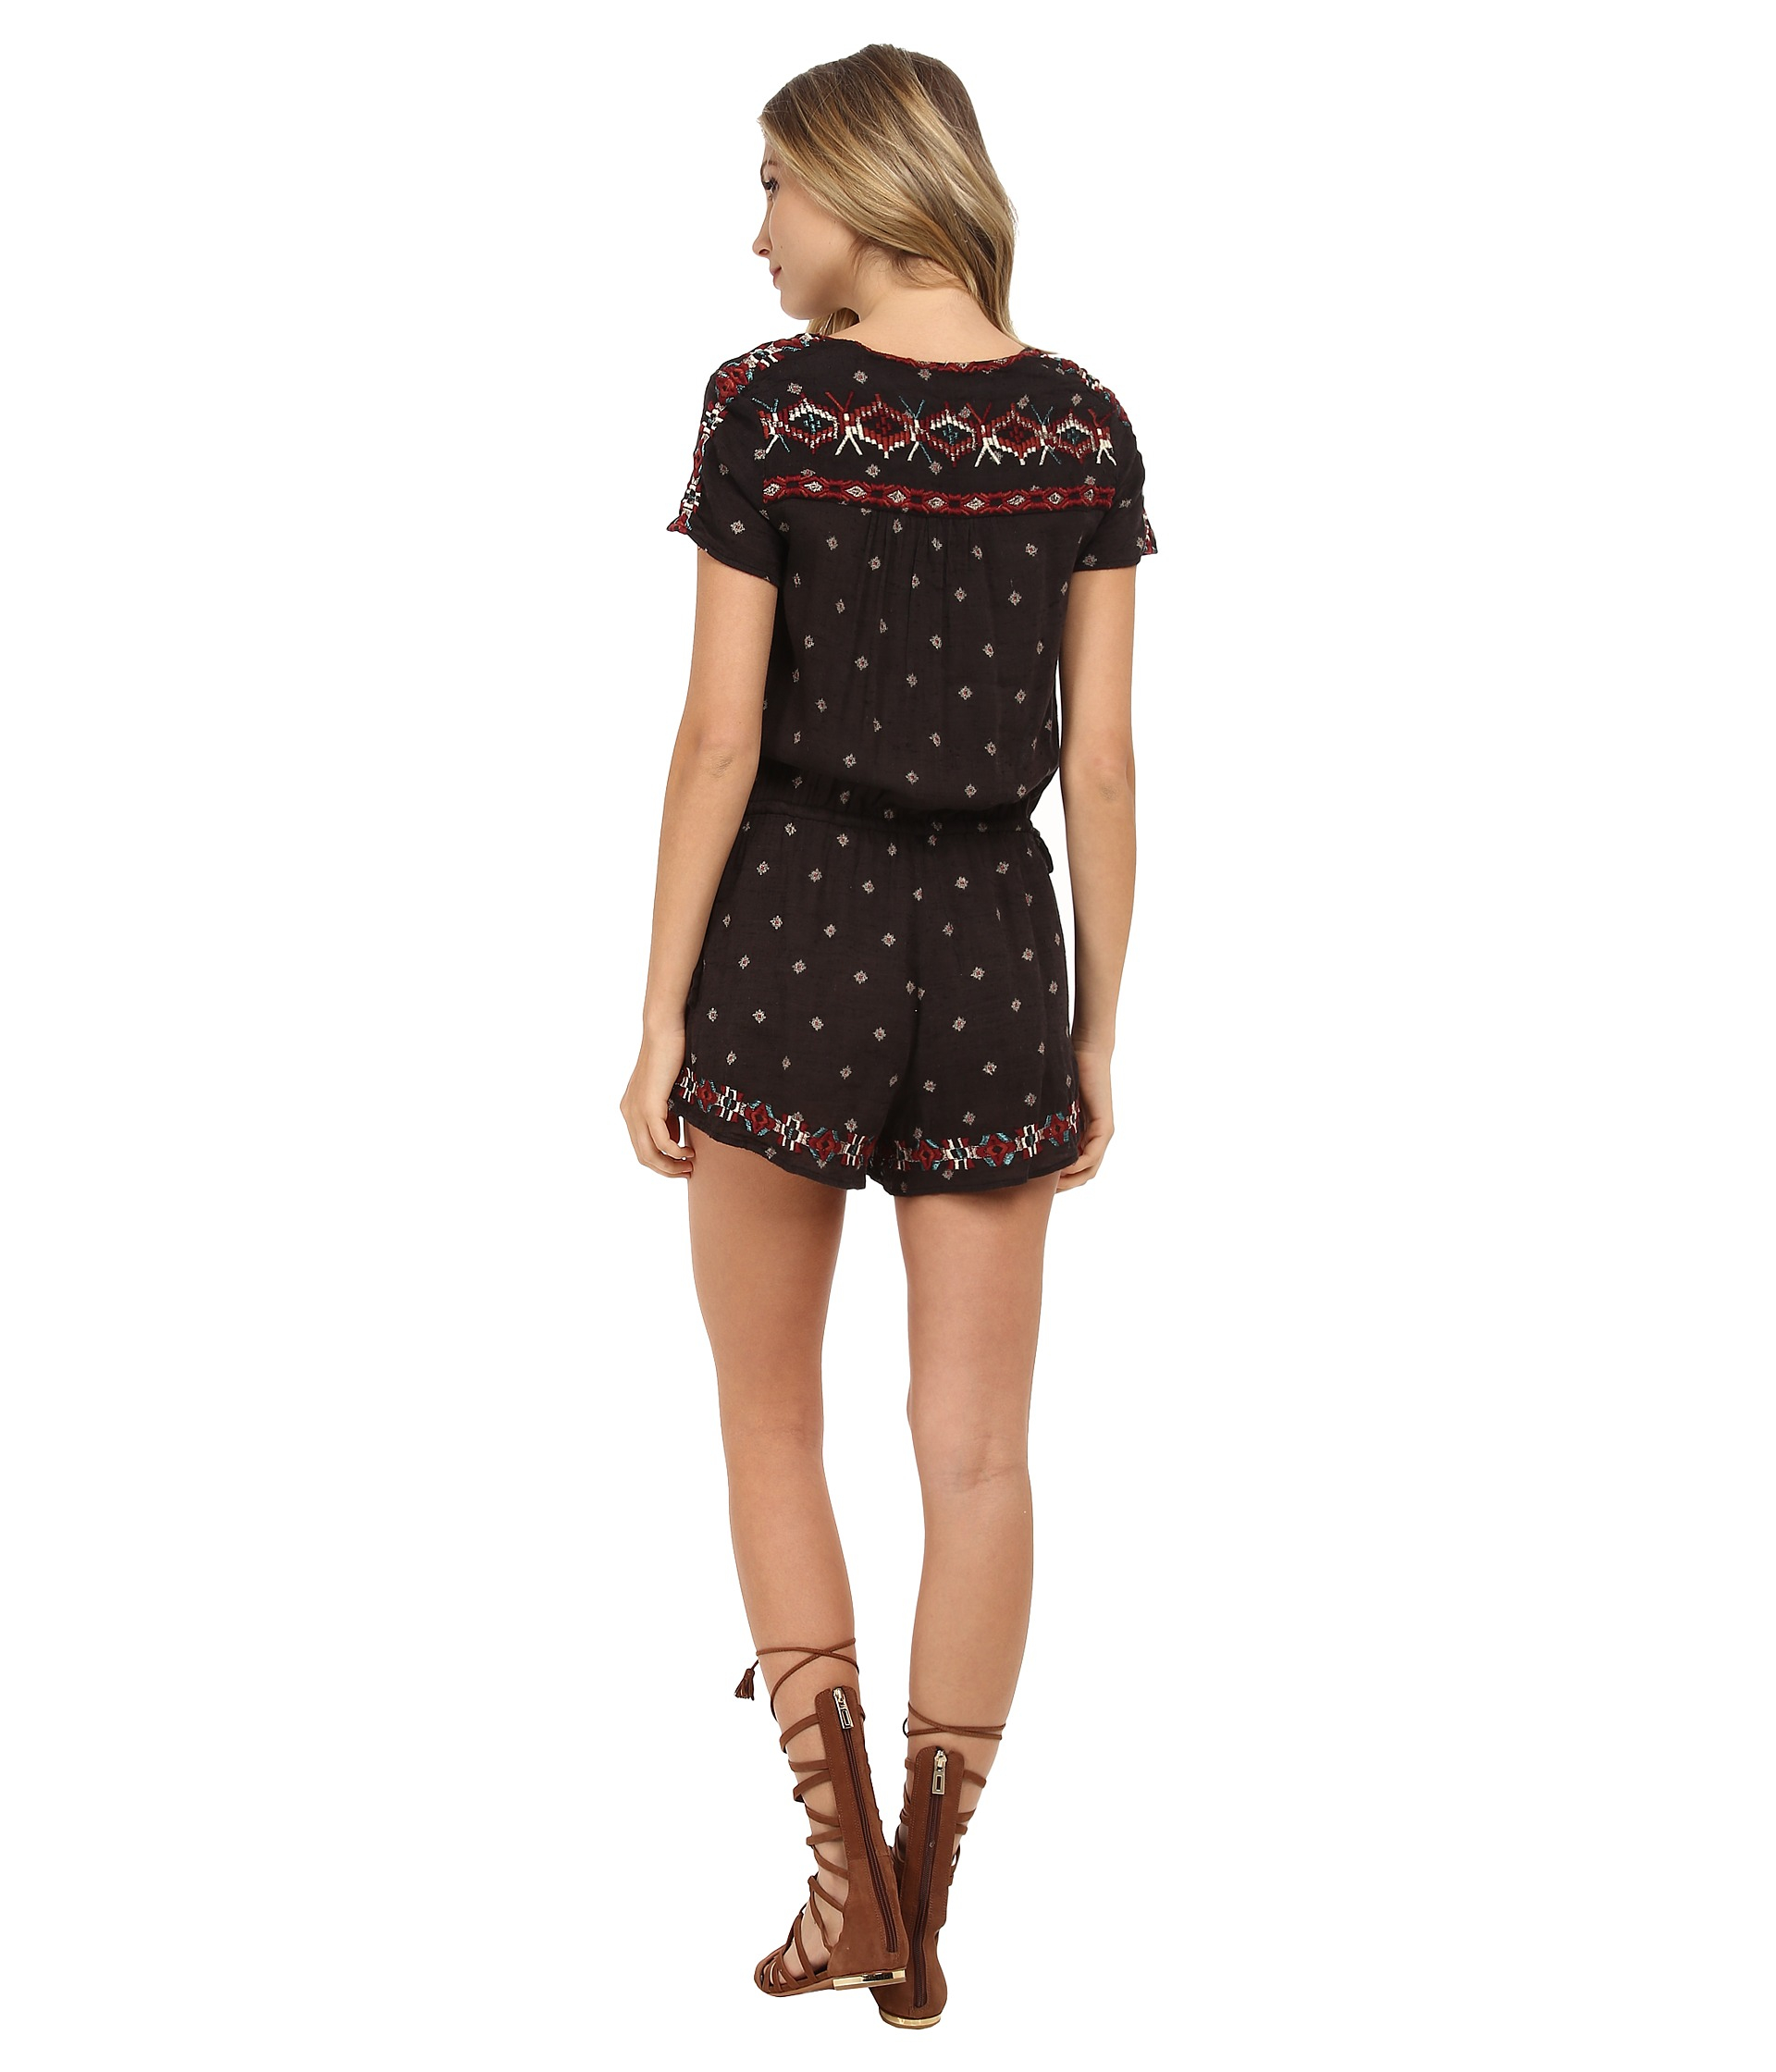 84d890235ac5 Lyst - Free People Cotton Noyal Song For You Romper in Black